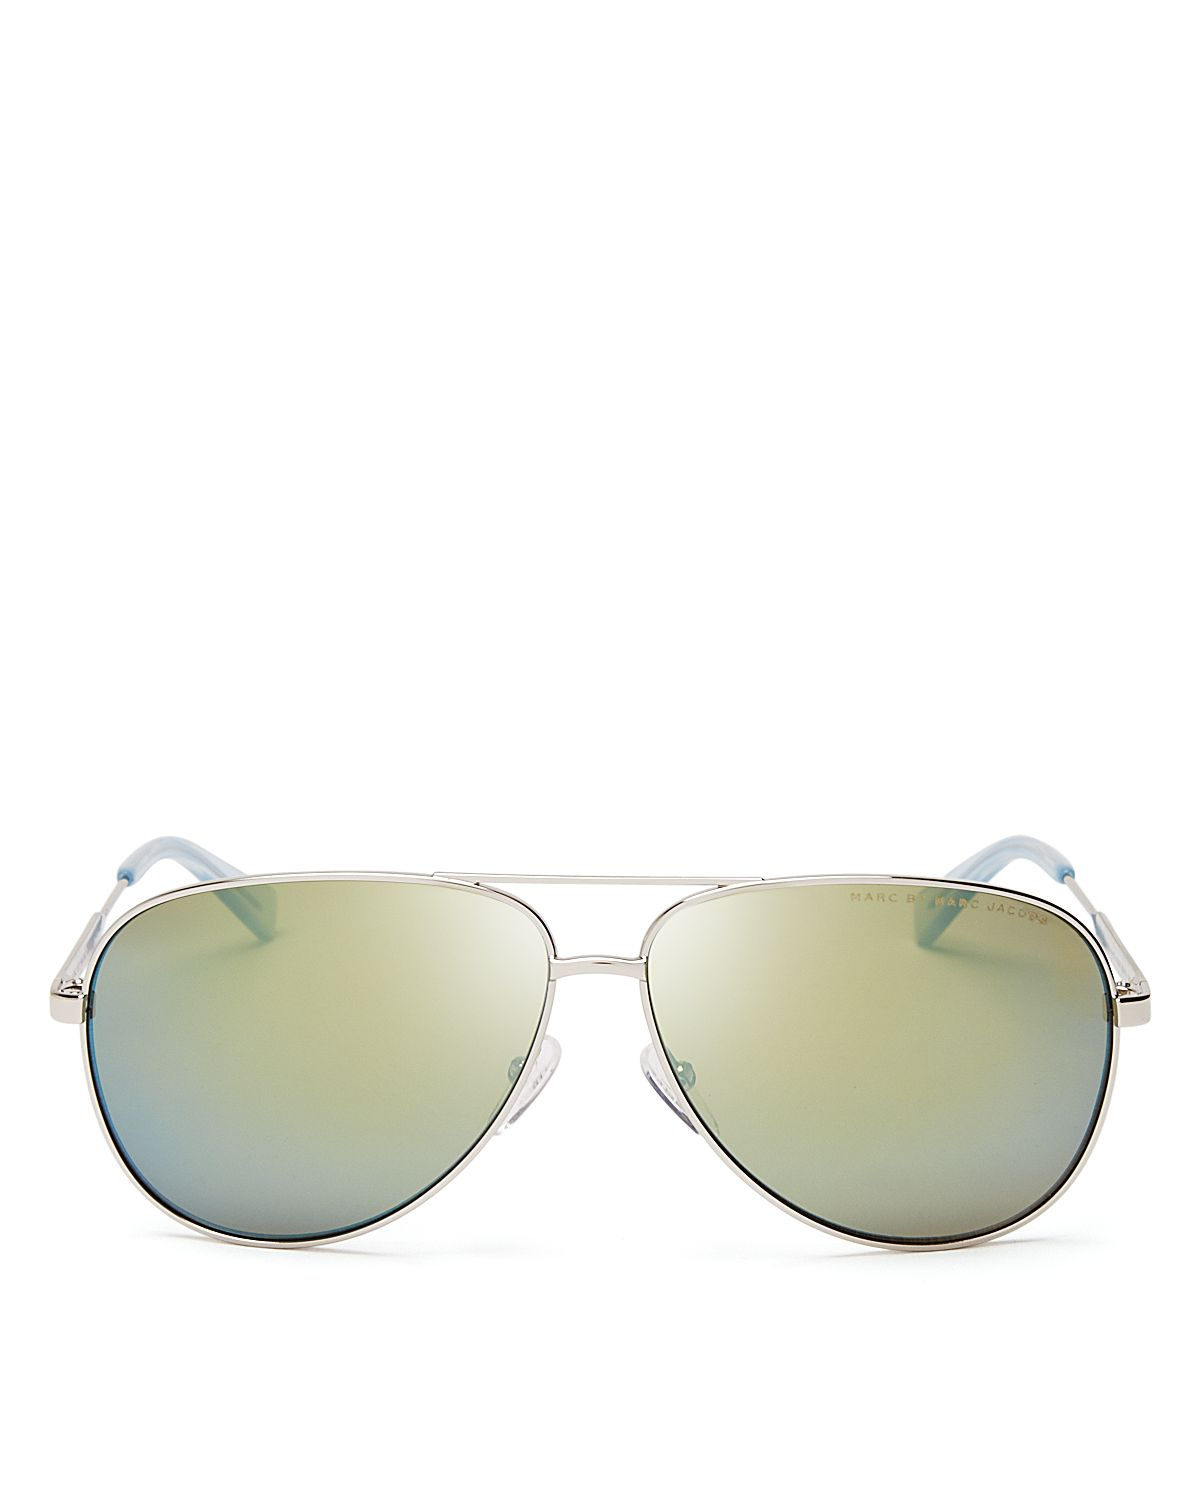 Marc by marc jacobs mirrored aviator sunglasses 60mm for Mirror sunglasses